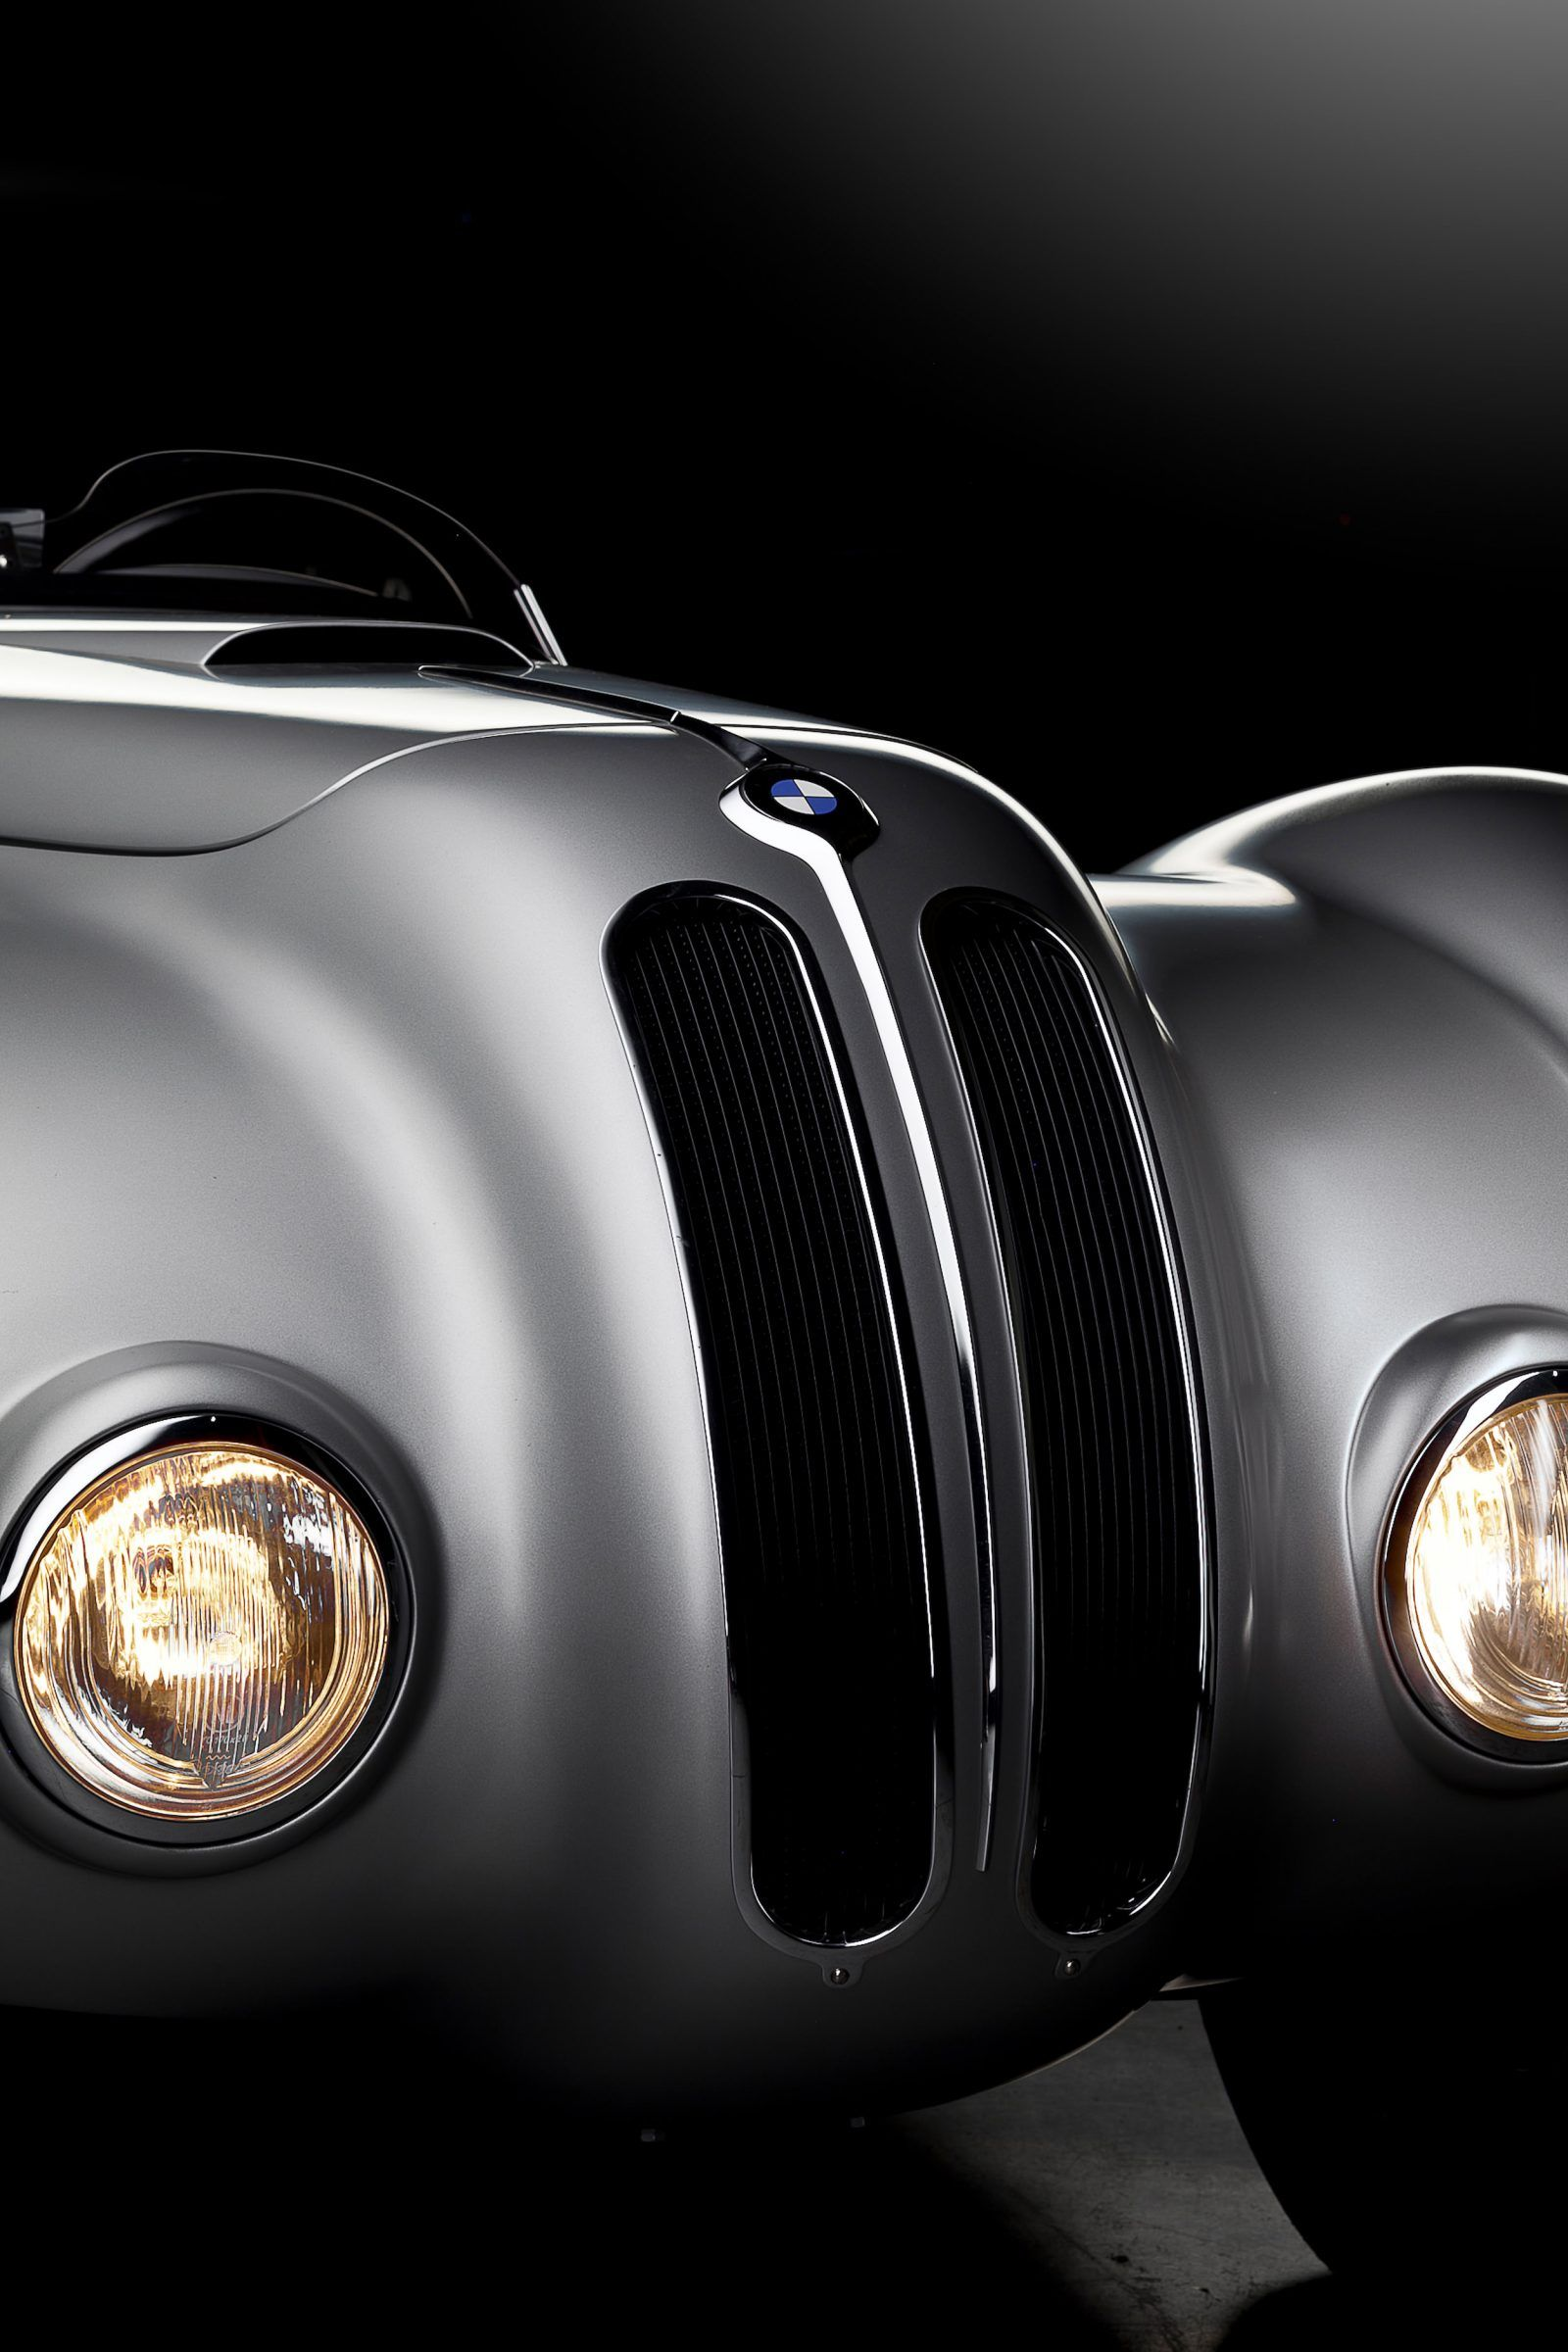 1940 BMW 328 Roadster | BMW, Cars and Bmw 328